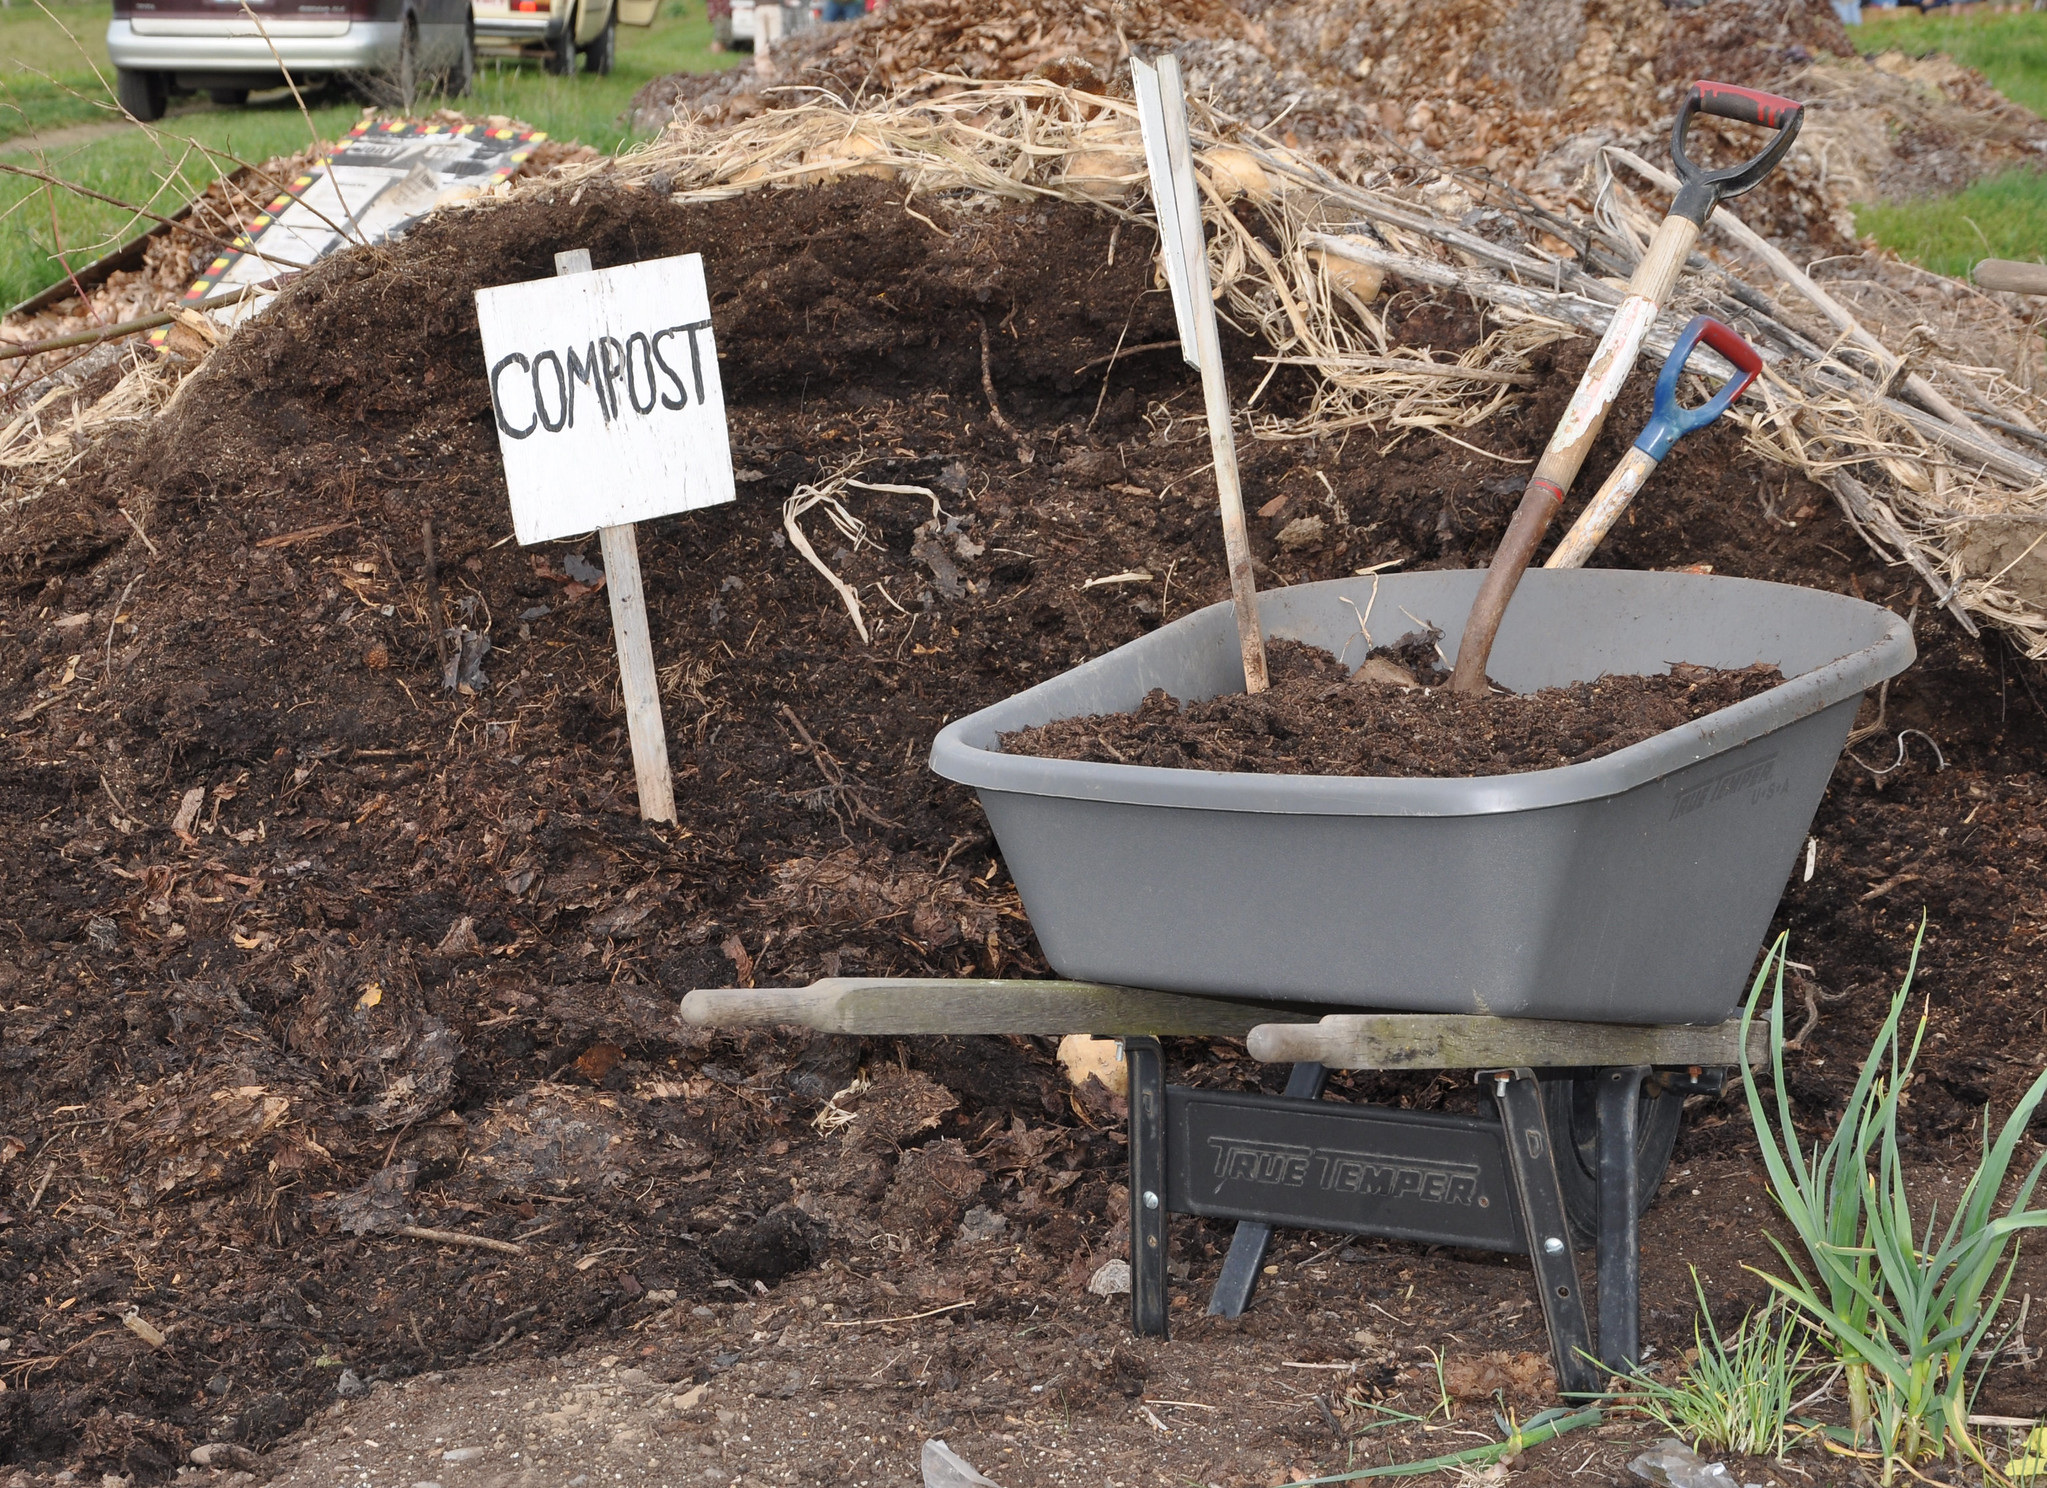 Adding compost improves soil's texture and adds nutrients